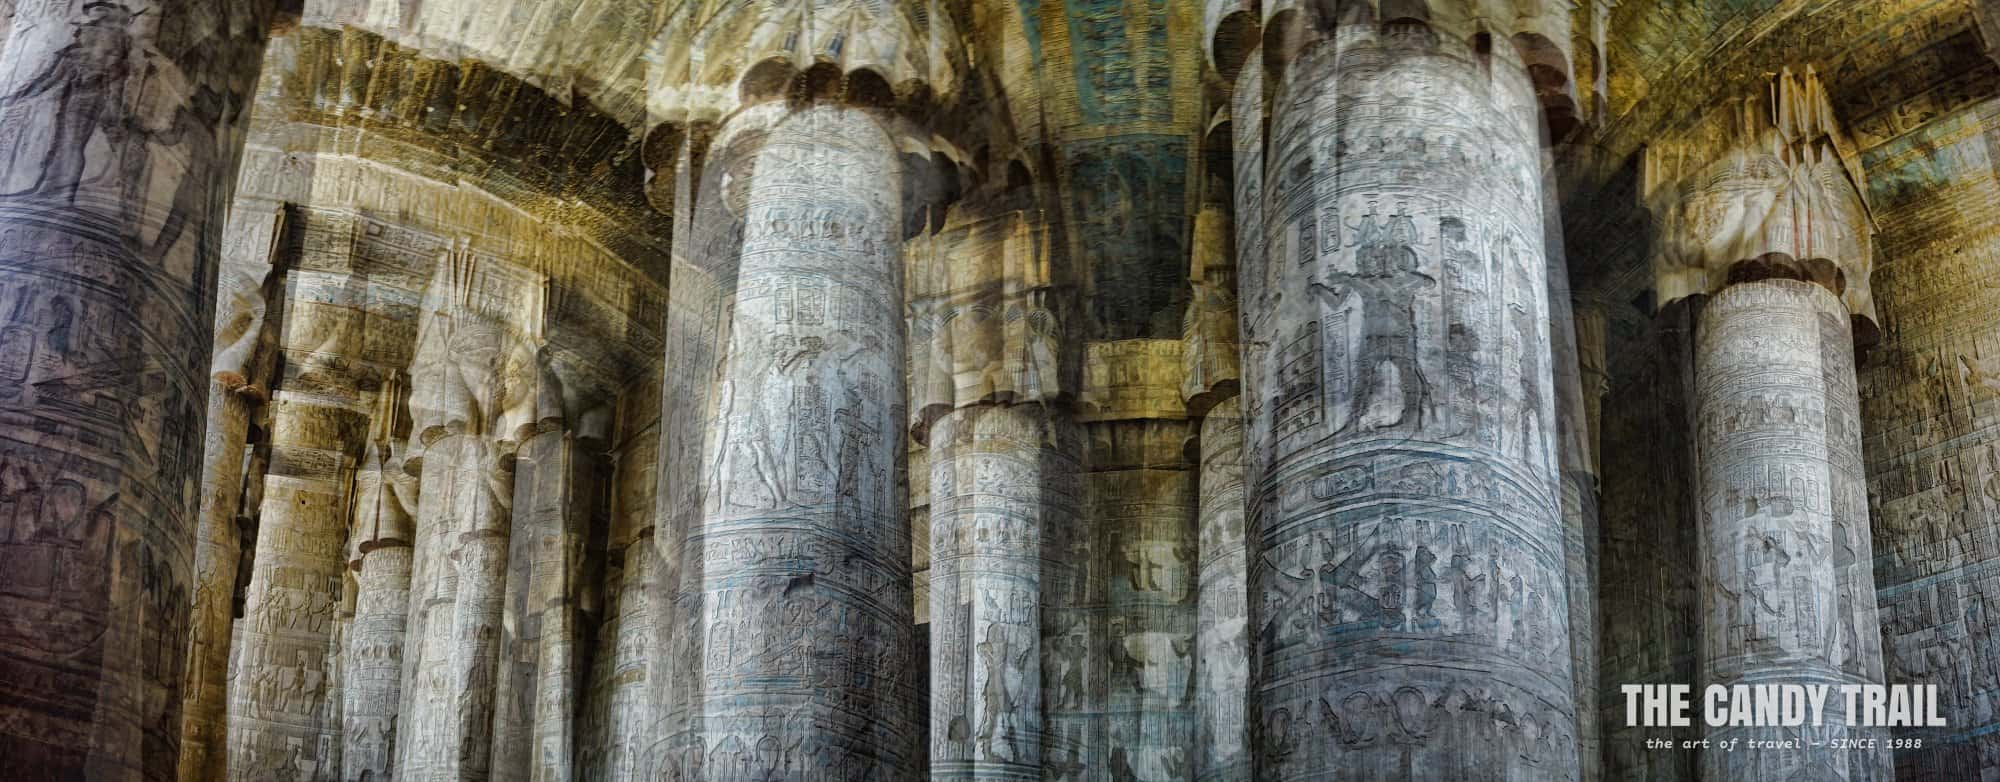 stone pillars whirling dendara hathor temple egypt